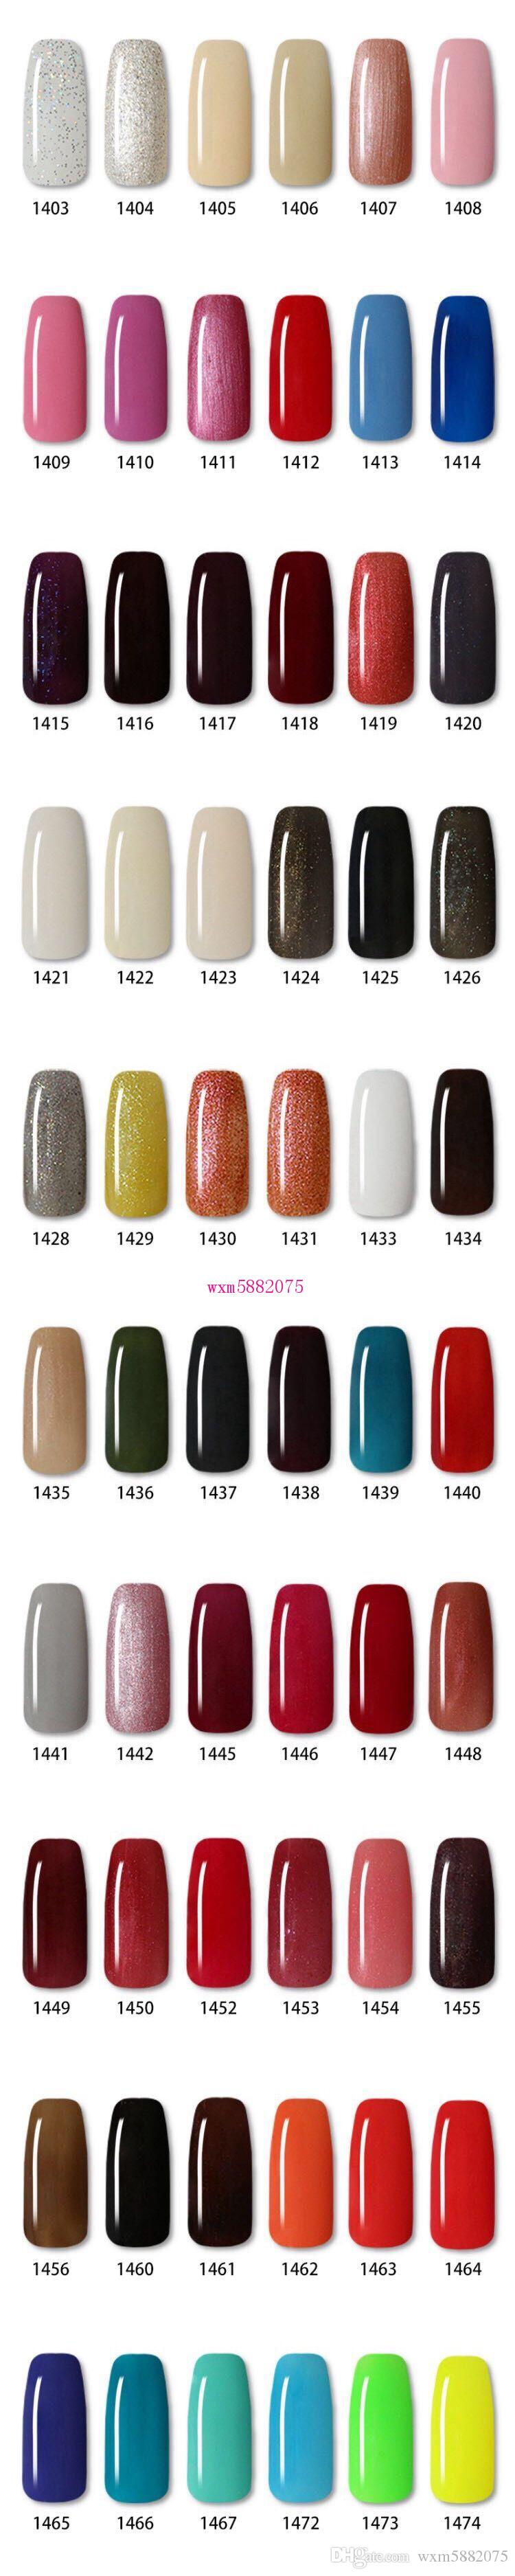 High Quality Cat Eyes Gel Polish Winter Summber Long Lasting Color Soak Off Led UV Gel Polish Led Nail Gel Lacquer Varnish Nail Designs Nail Art From